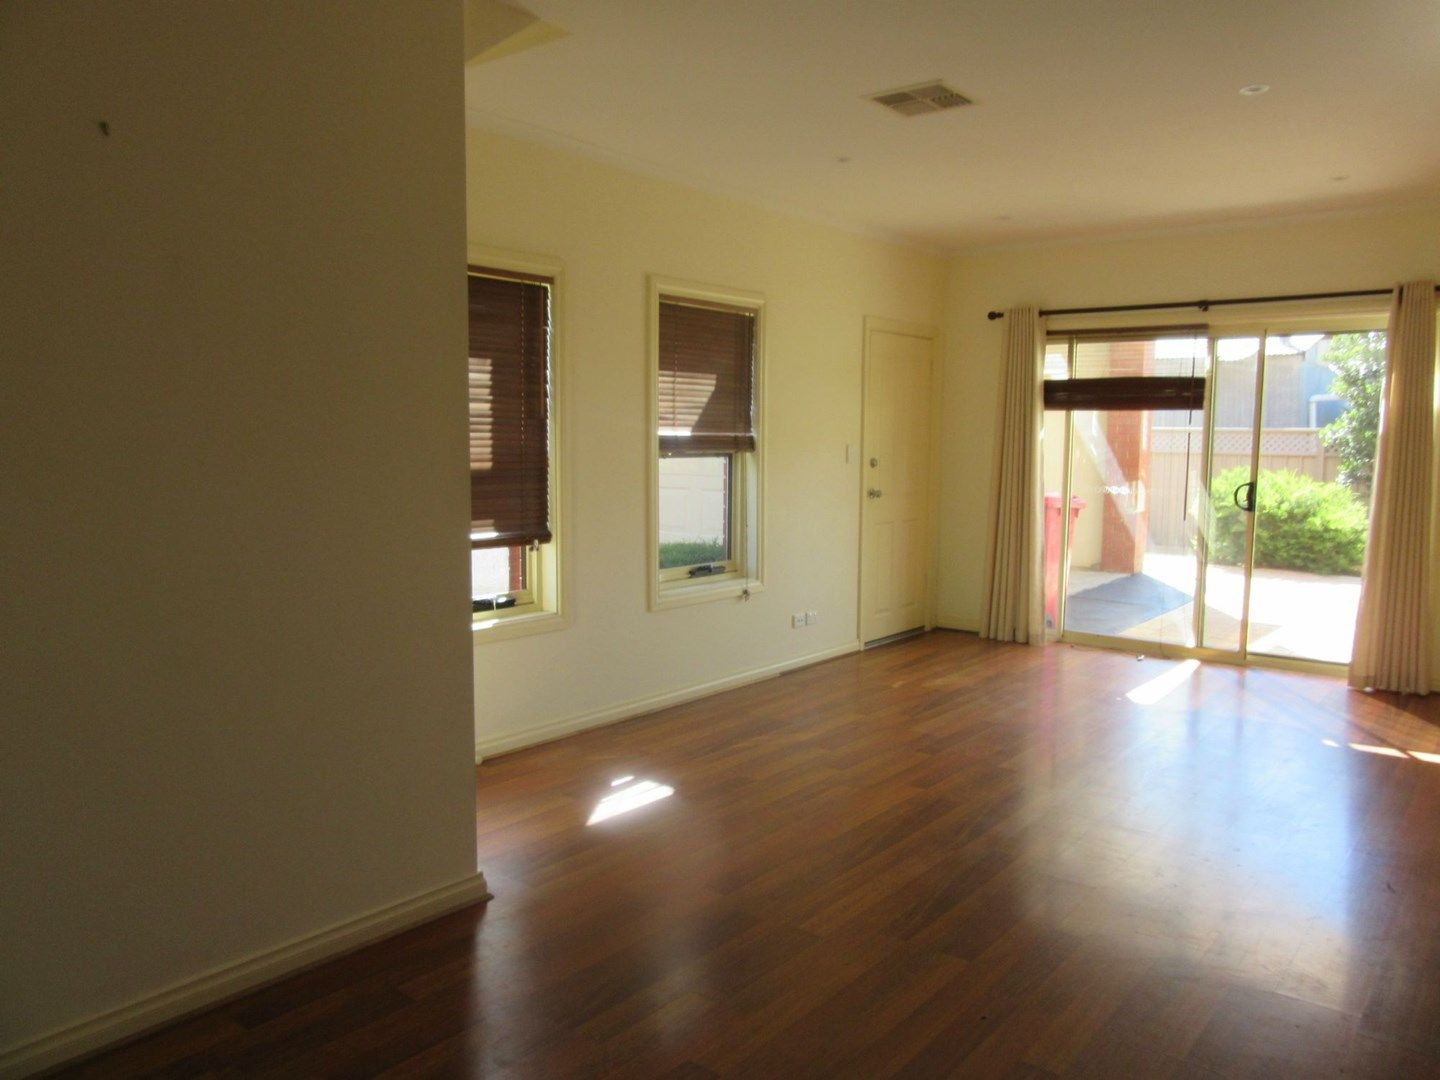 3/51 Charlotte Drive, Paralowie SA 5108, Image 0